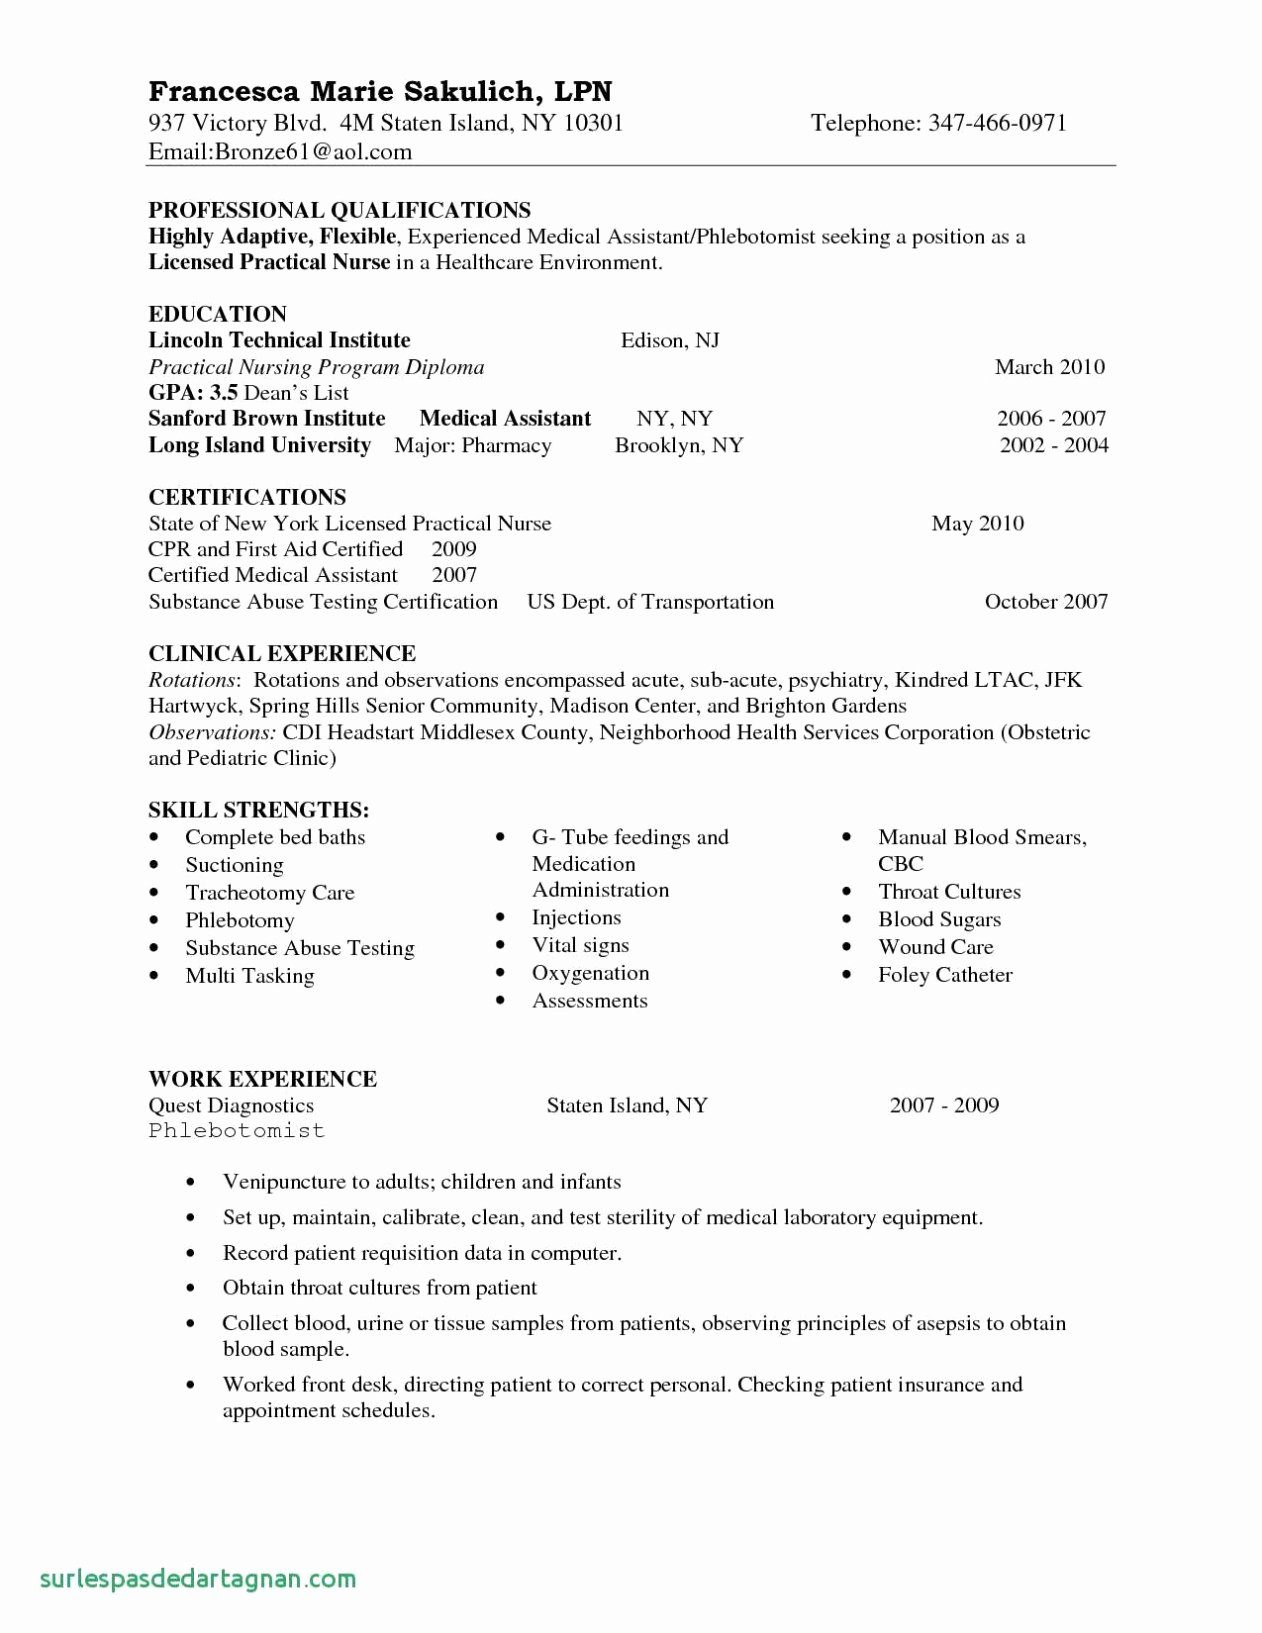 Graduate Nurse Resume Template Unique New Graduate Nurse Resume Tag 45 Extraordinary New